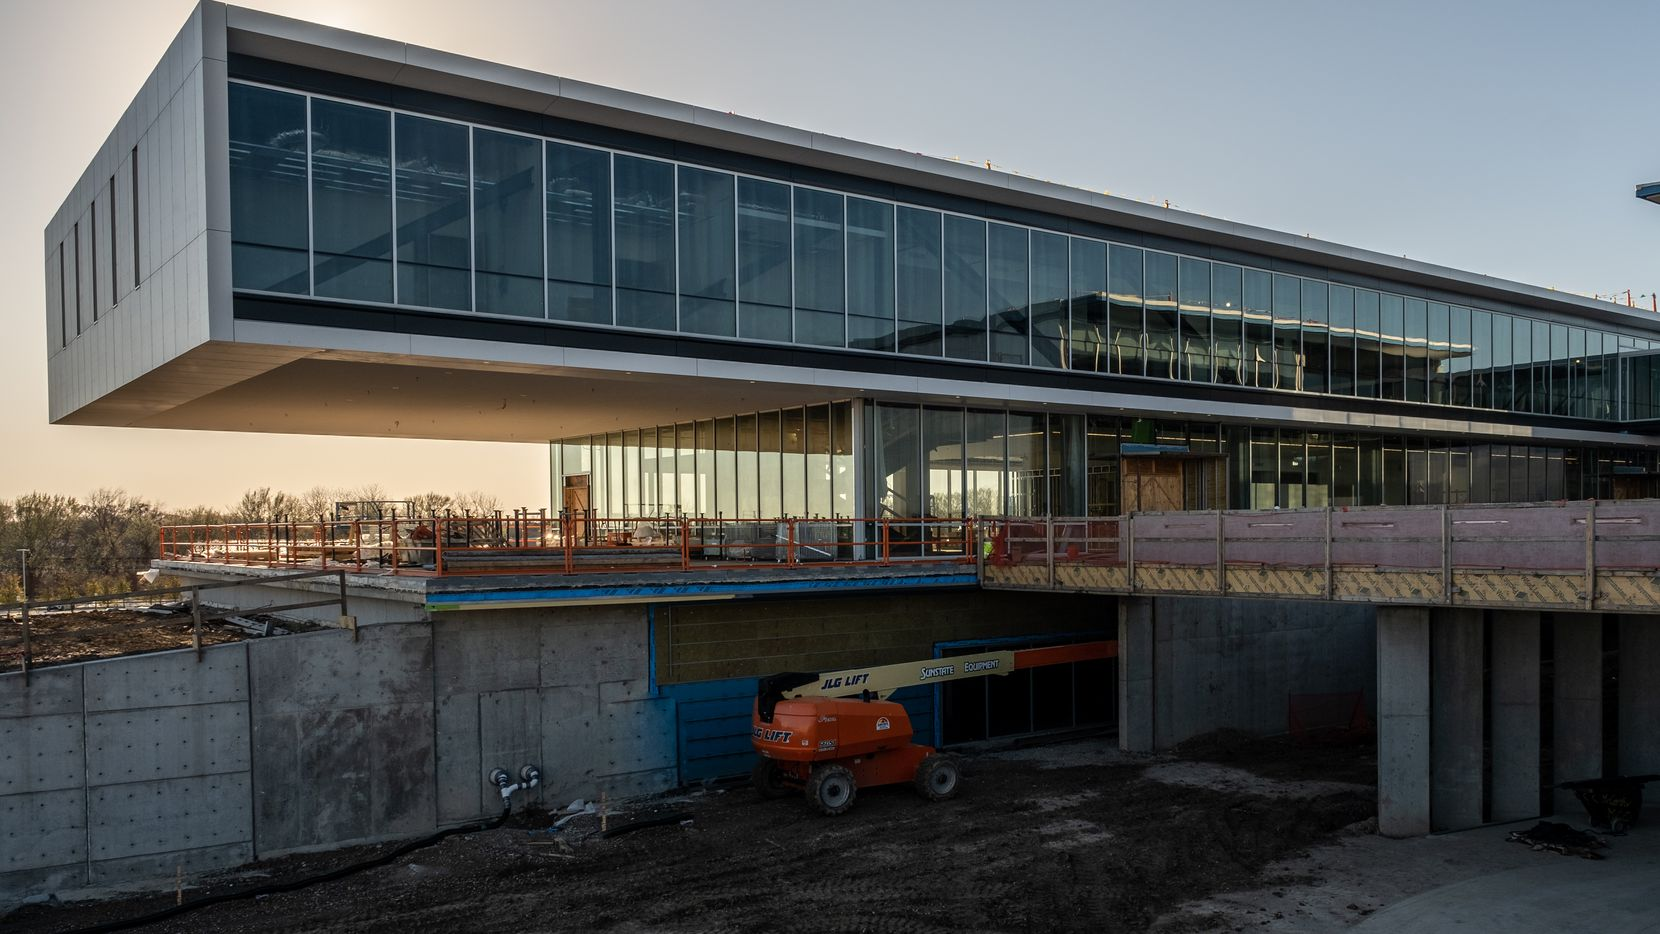 Here's a view of the academic building anchoring one end of the Collin College Technical Campus, scheduled to open for classes this fall. The cantilever provides shade for a future outdoor patio that will serve as a study and recreation area for students.